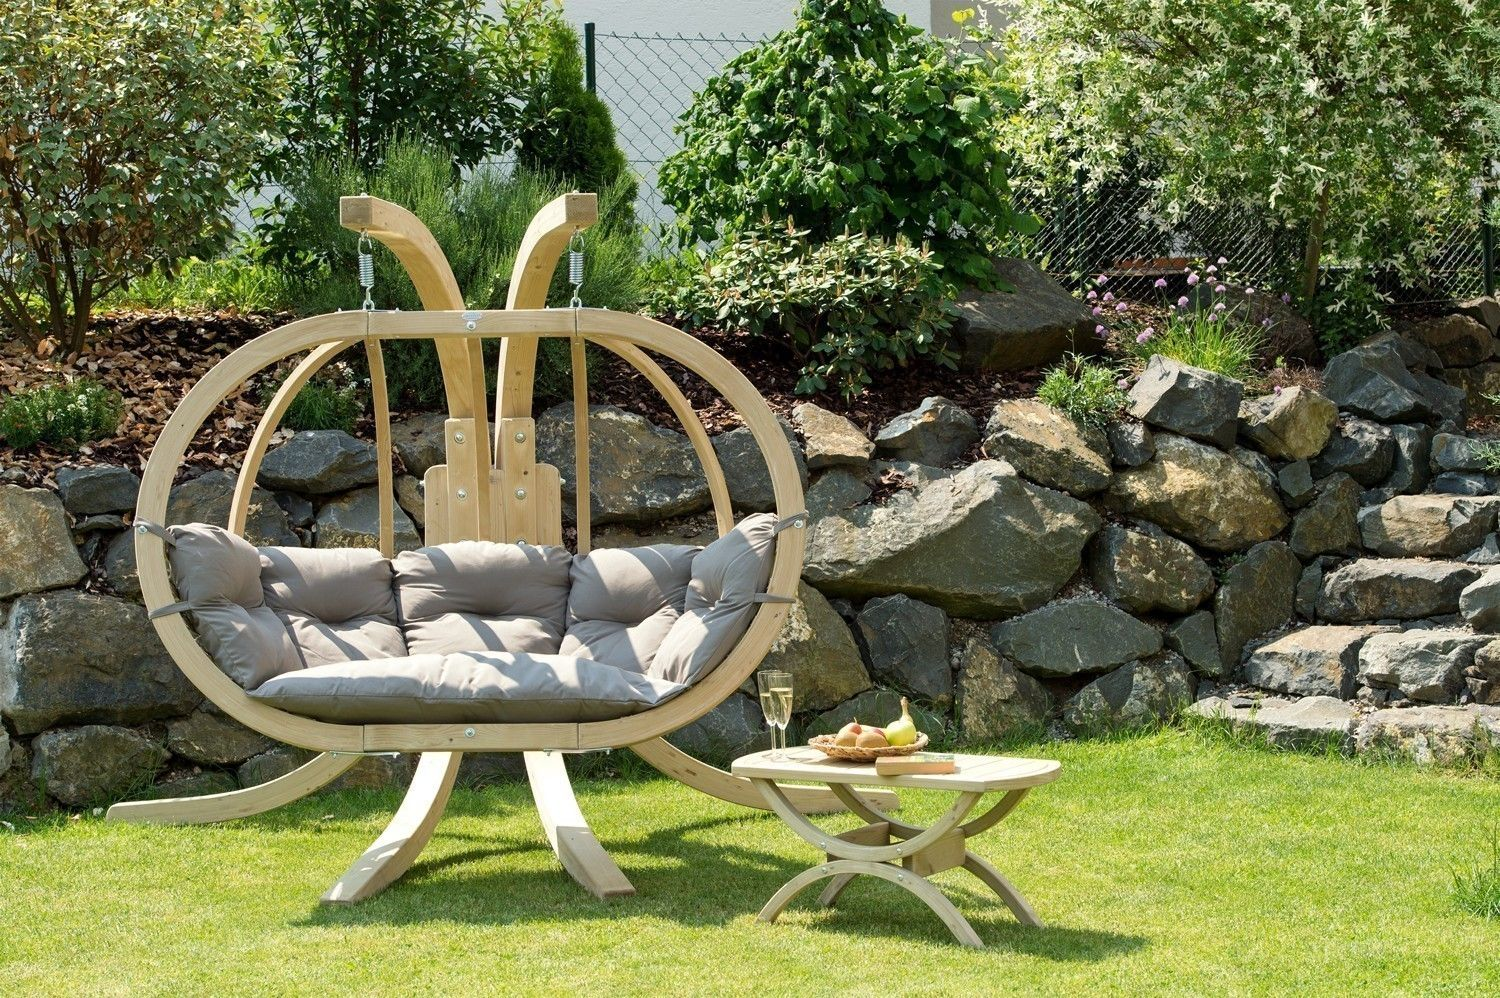 Globo Royal Hanging Chair Hanging Chair Hanging Chair Outdoor Hanging Furniture